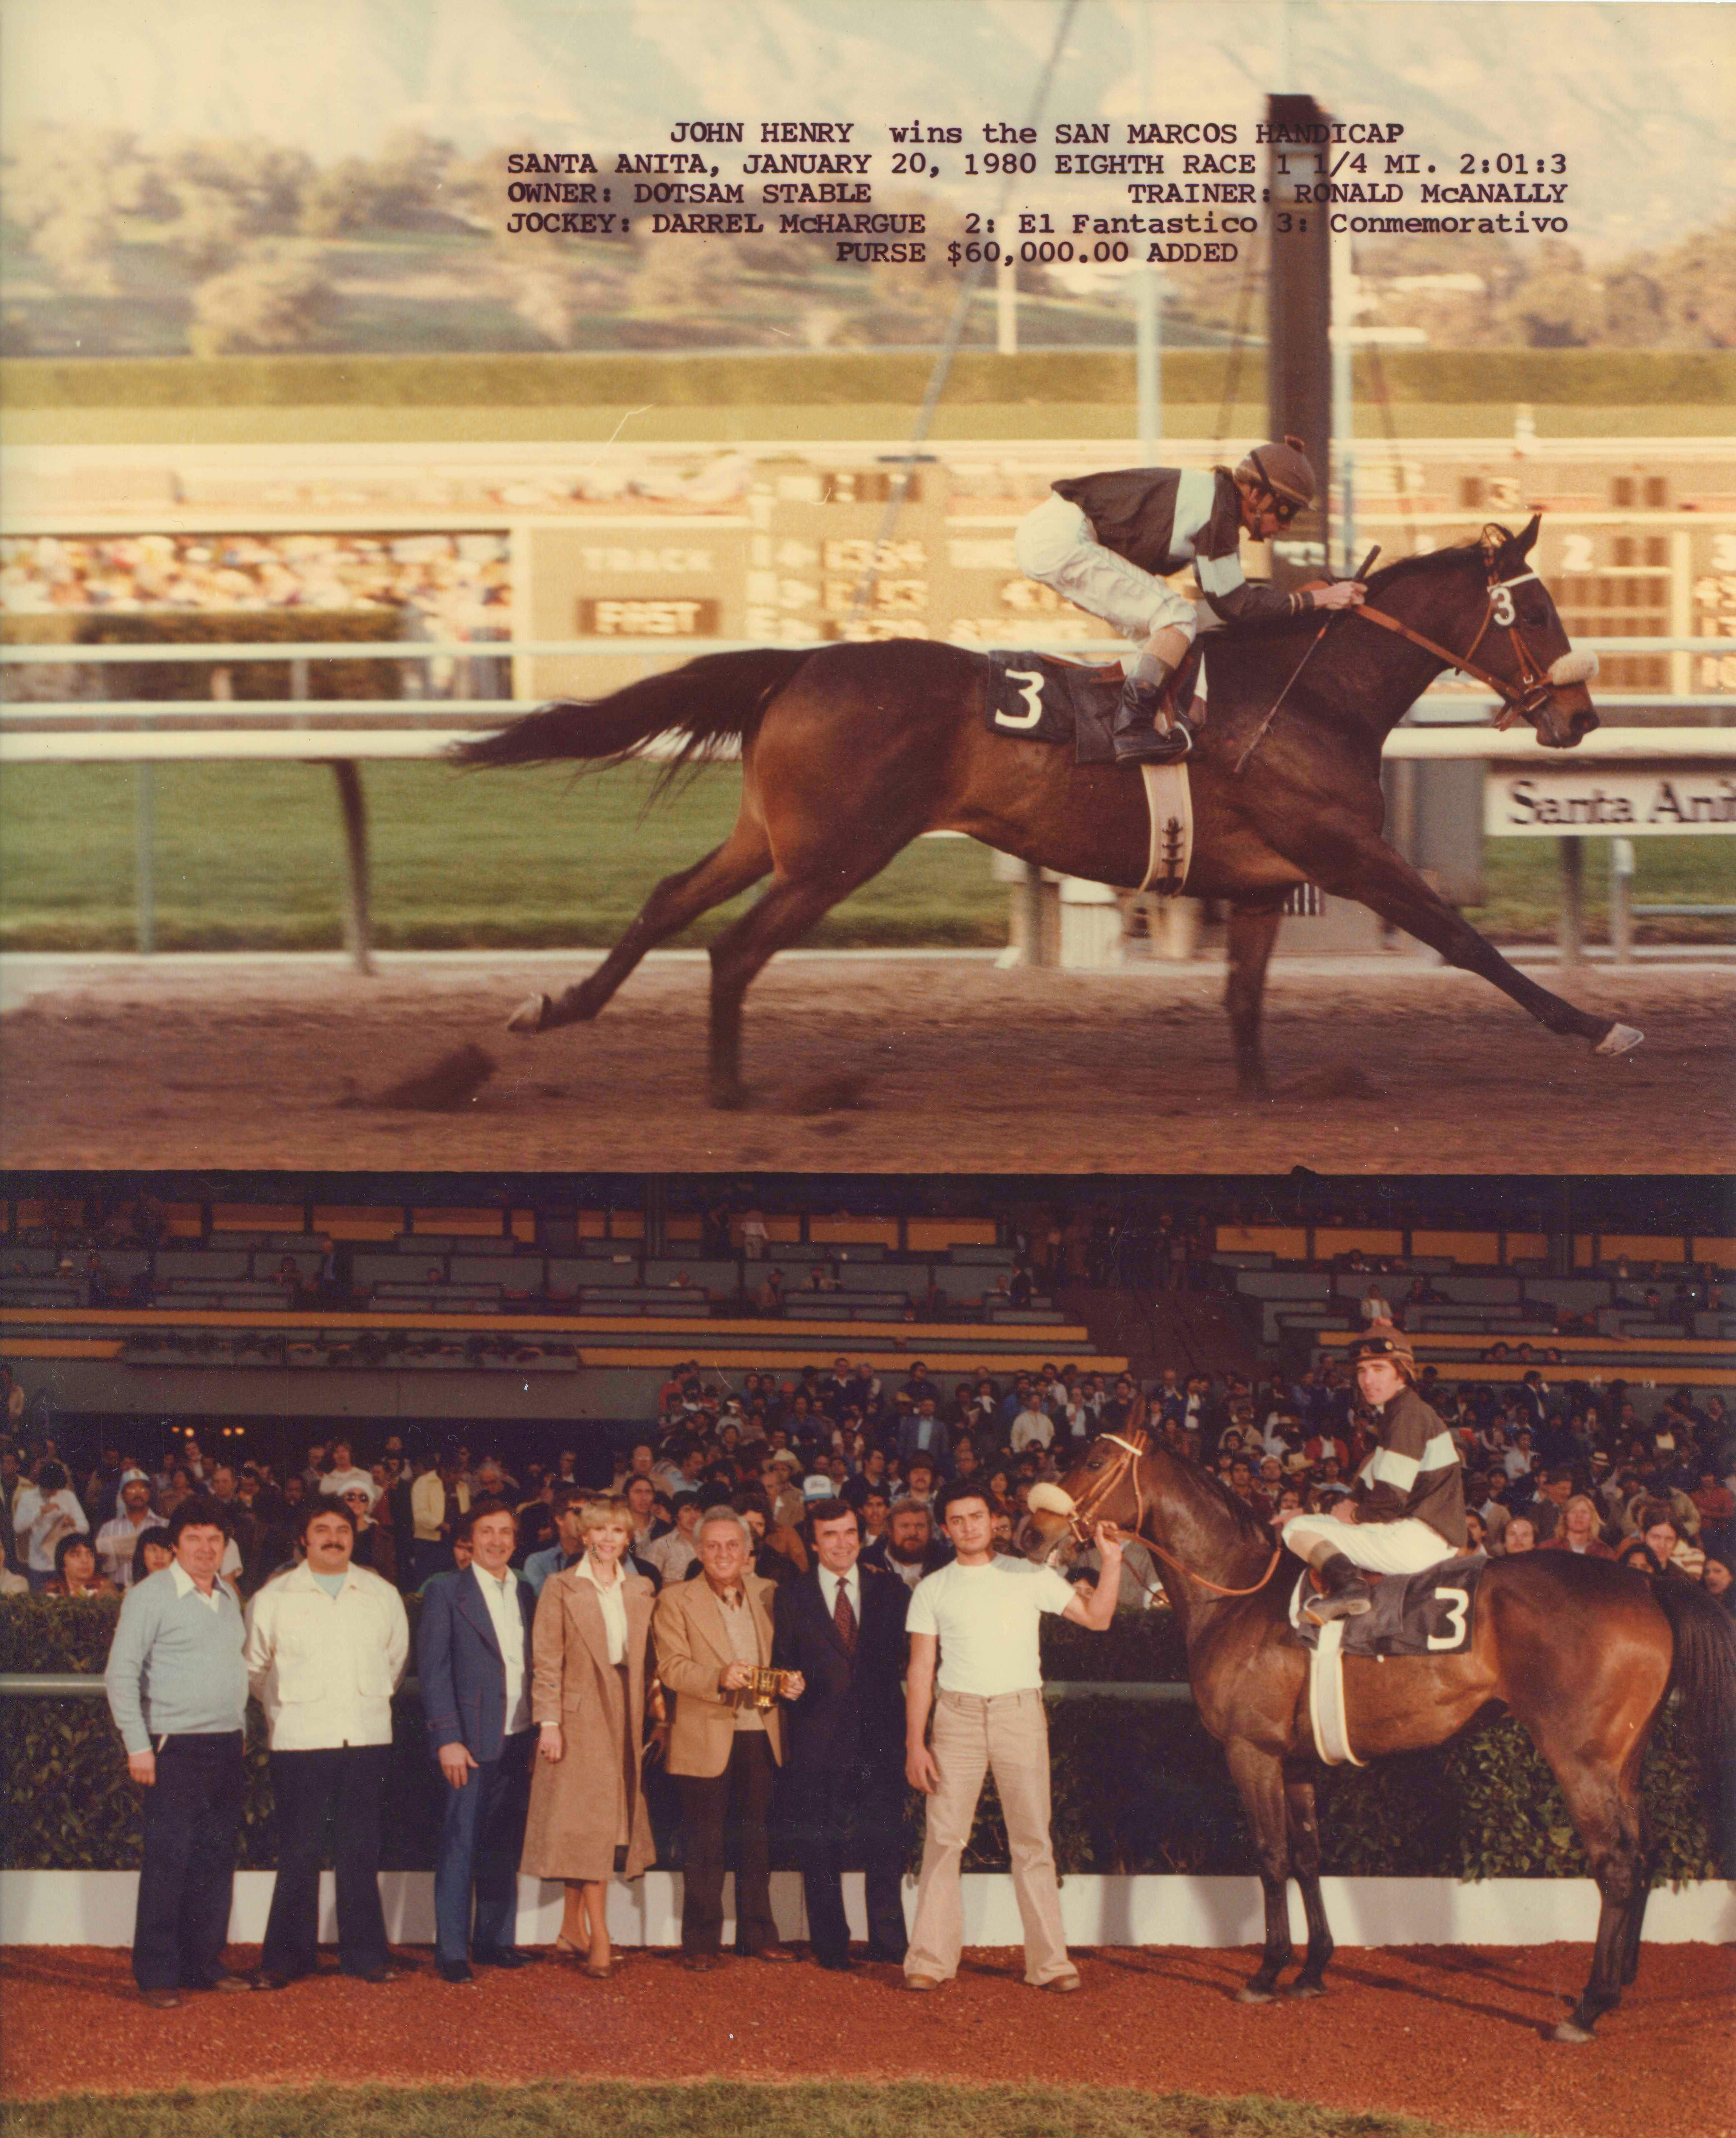 Win composite photograph for the 1980 San Marcos Handicap at Santa Anita, won by John Henry (Darrel McHargue up) (Bill Mochon/Museum Collection)